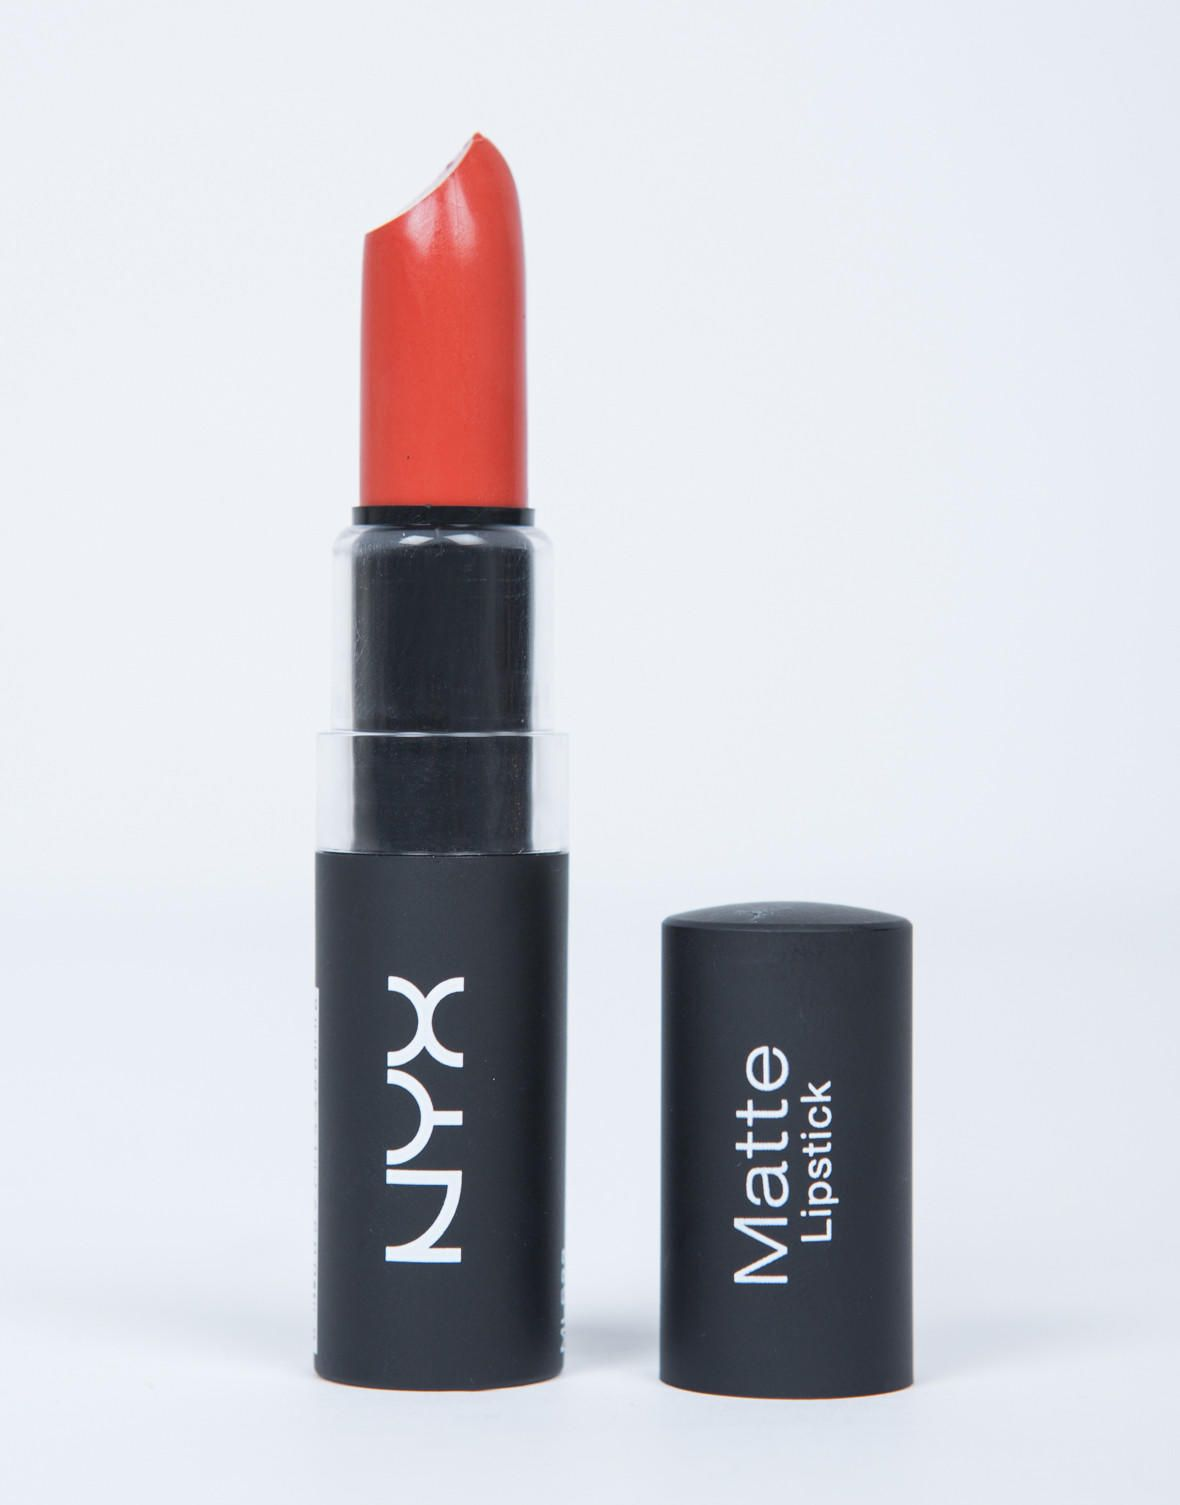 NYX Matte Lipstick - Indie Flick from 2020AVE. Saved to Beauty . #lips #lipstick #makeup #redorange #beauty  #cosmetics #nyx...